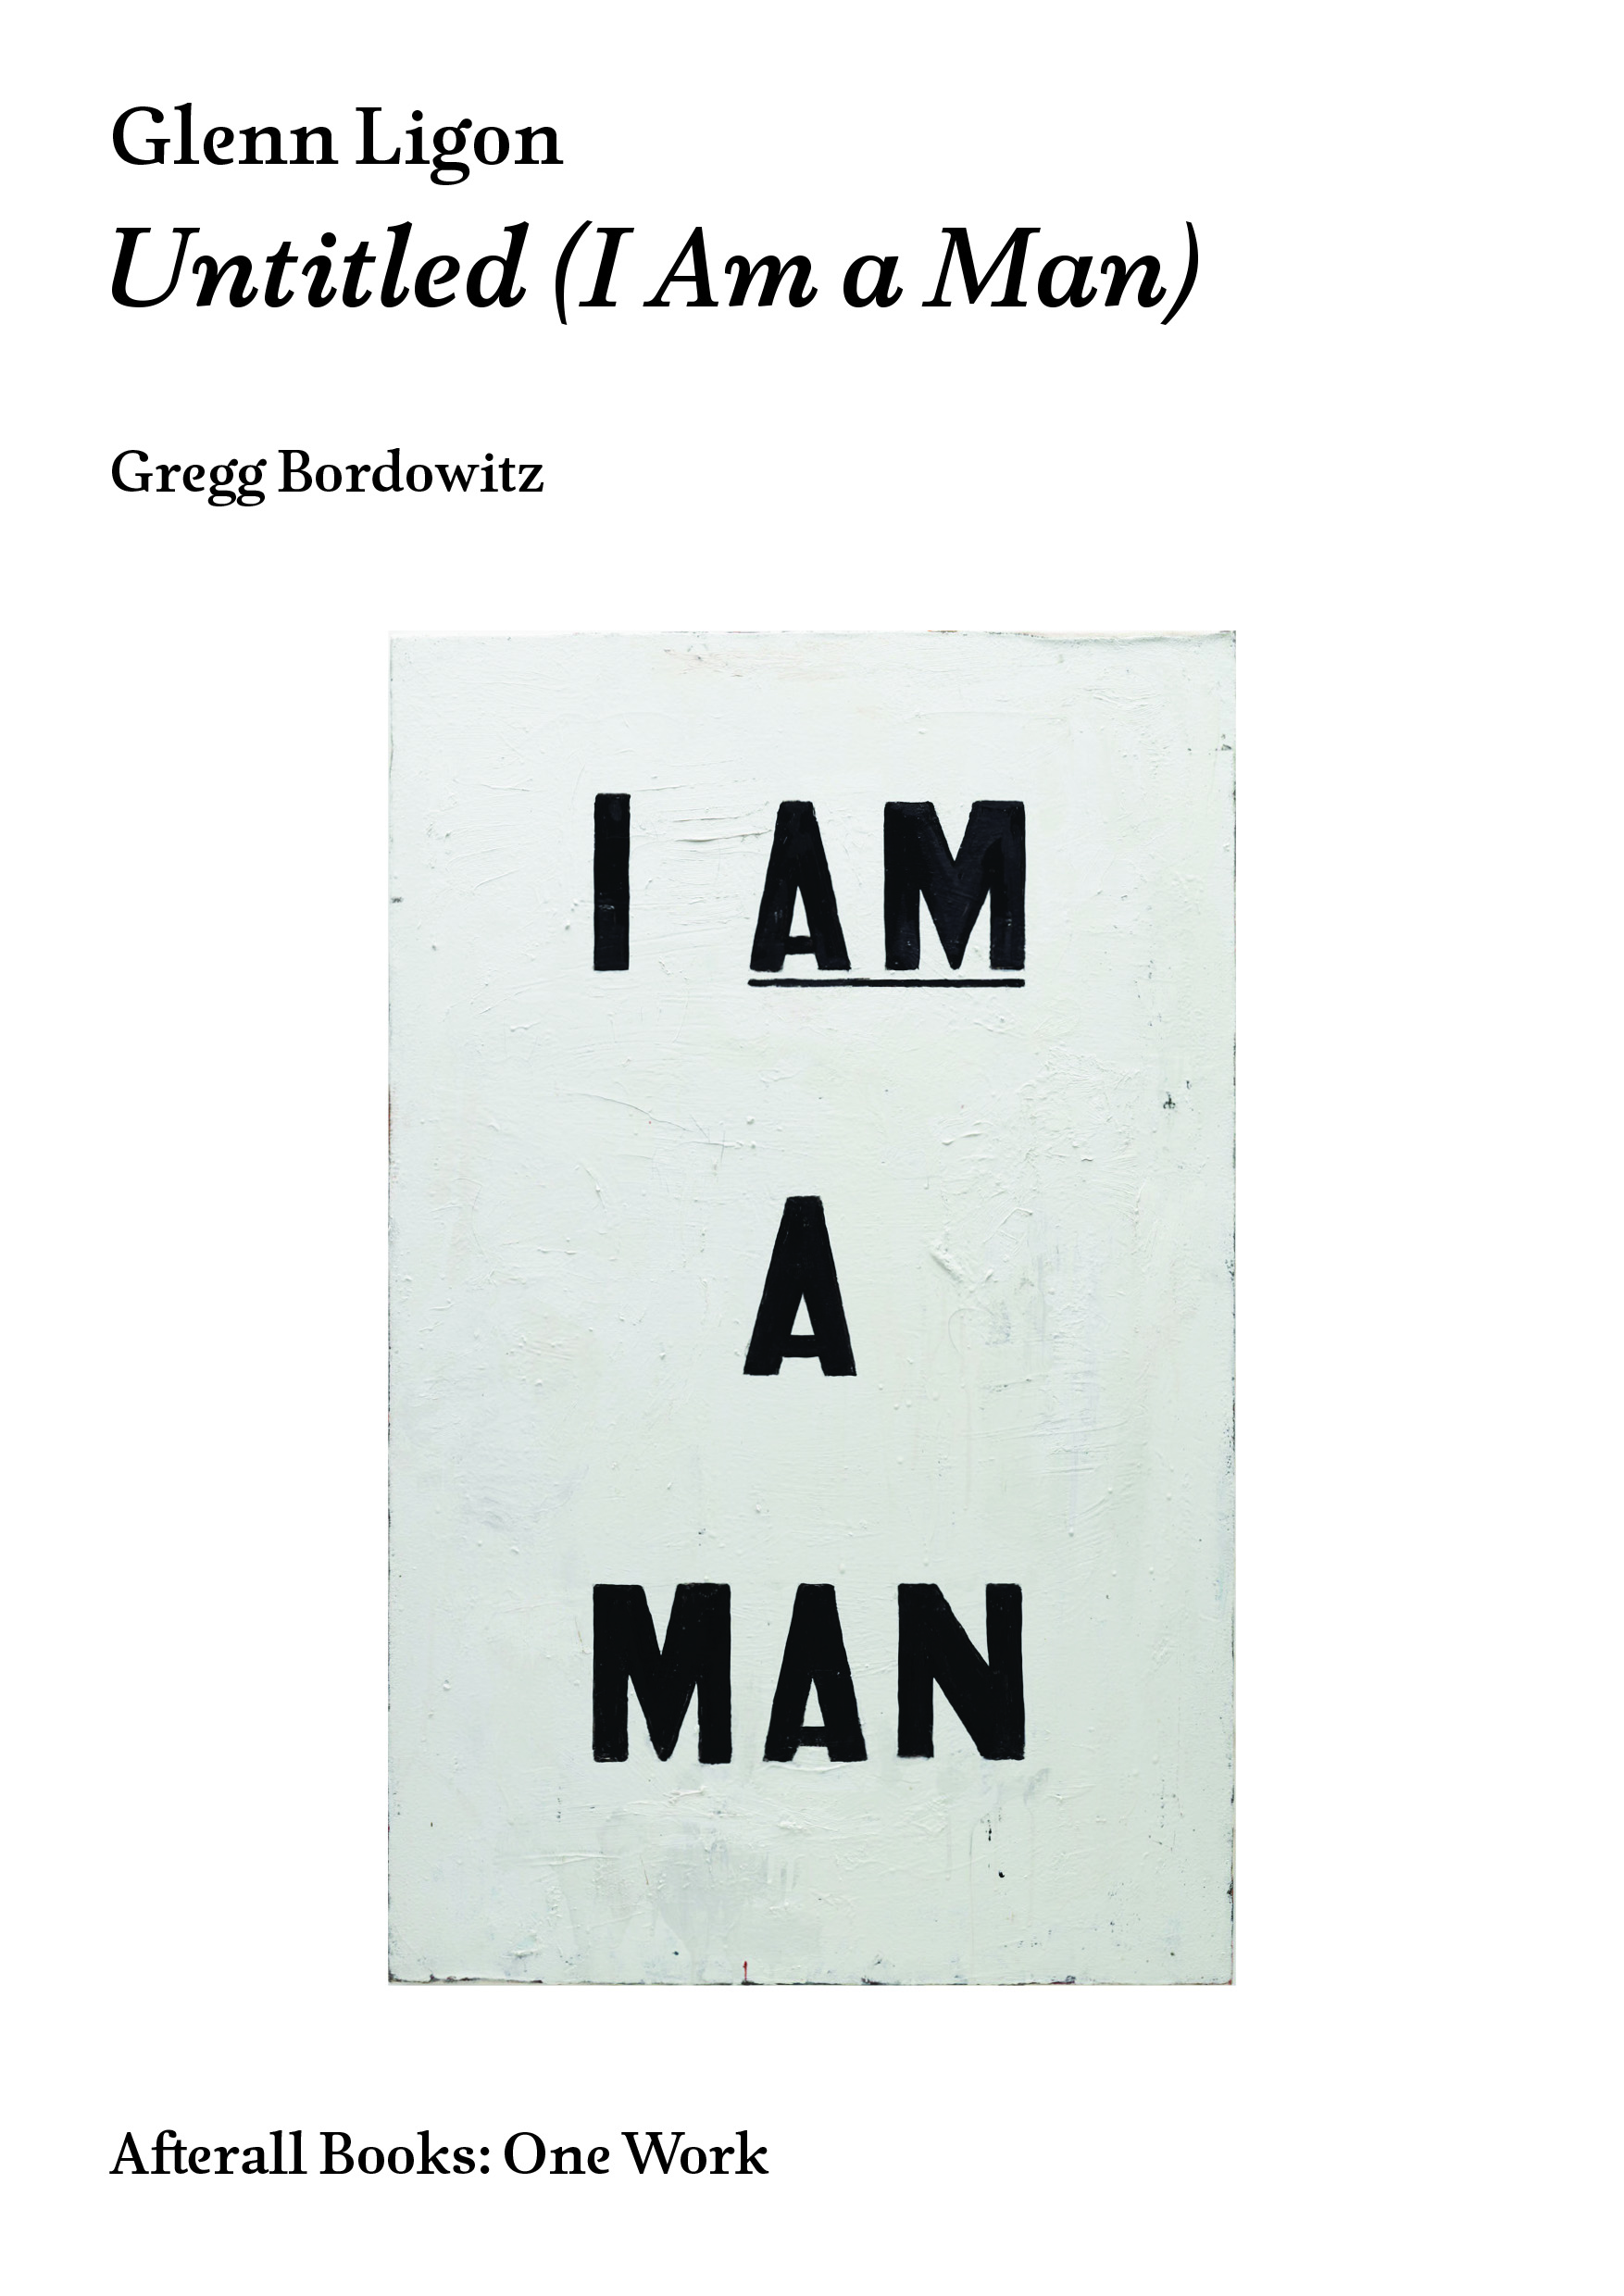 Glenn Ligon: Untitled (I Am a Man) . Text by Gregg Bordowitz. London: Afterall One Work series, 2018.